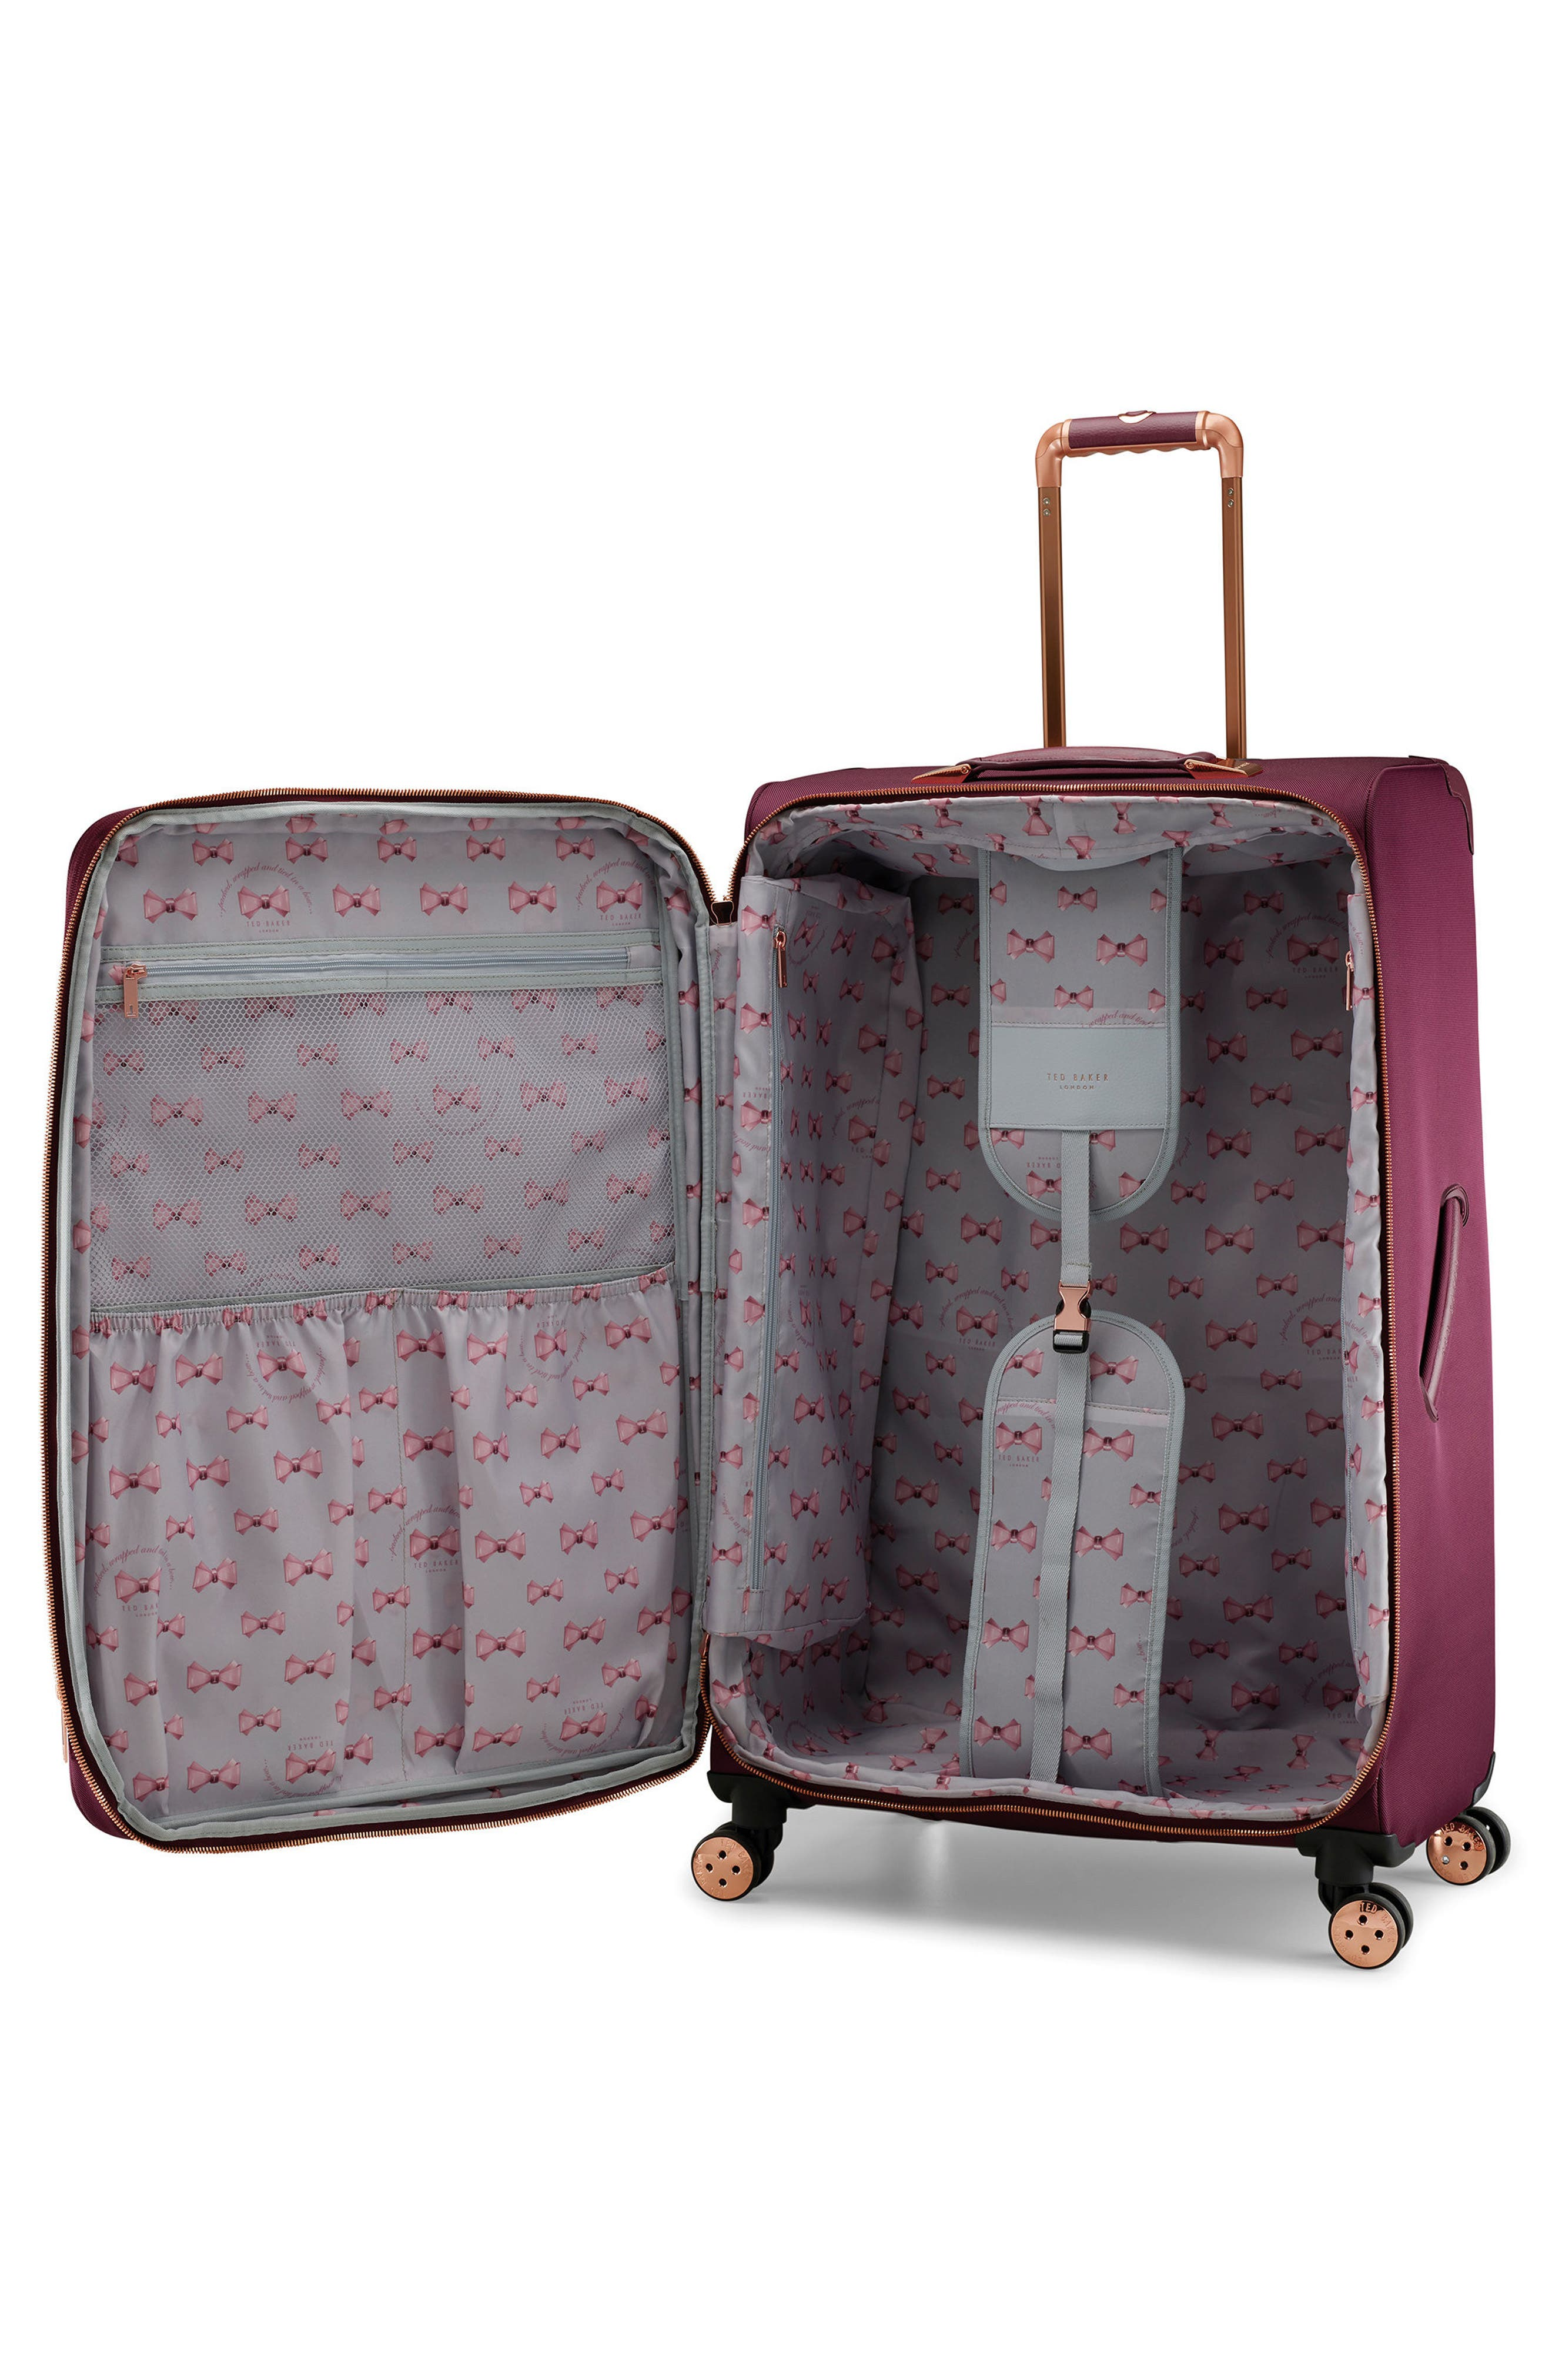 33-Inch Spinner Trolley Packing Case,                             Alternate thumbnail 2, color,                             BURGUNDY